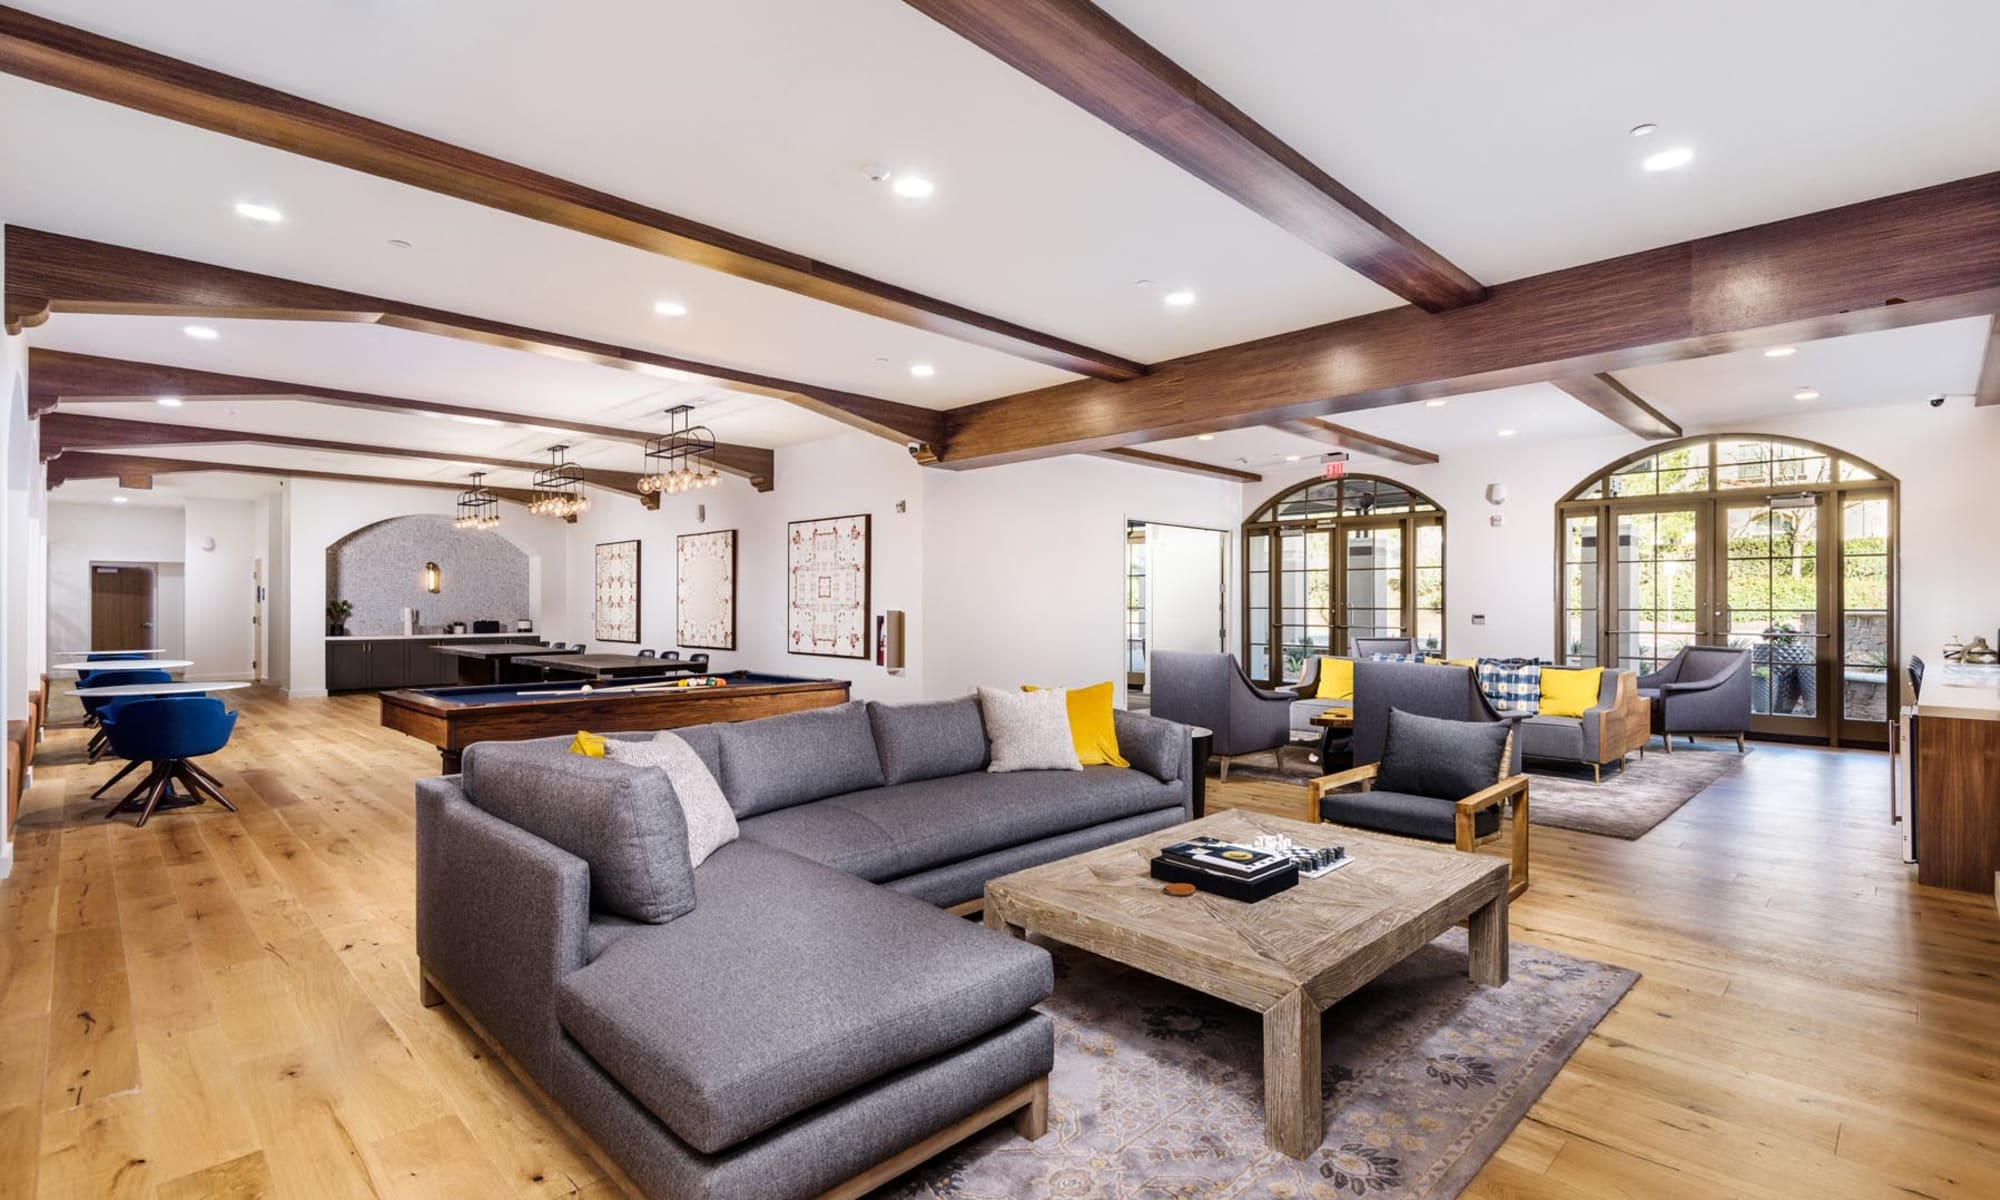 Expansive and well-furnished resident clubhouse lounge at Mission Hills in Camarillo, California